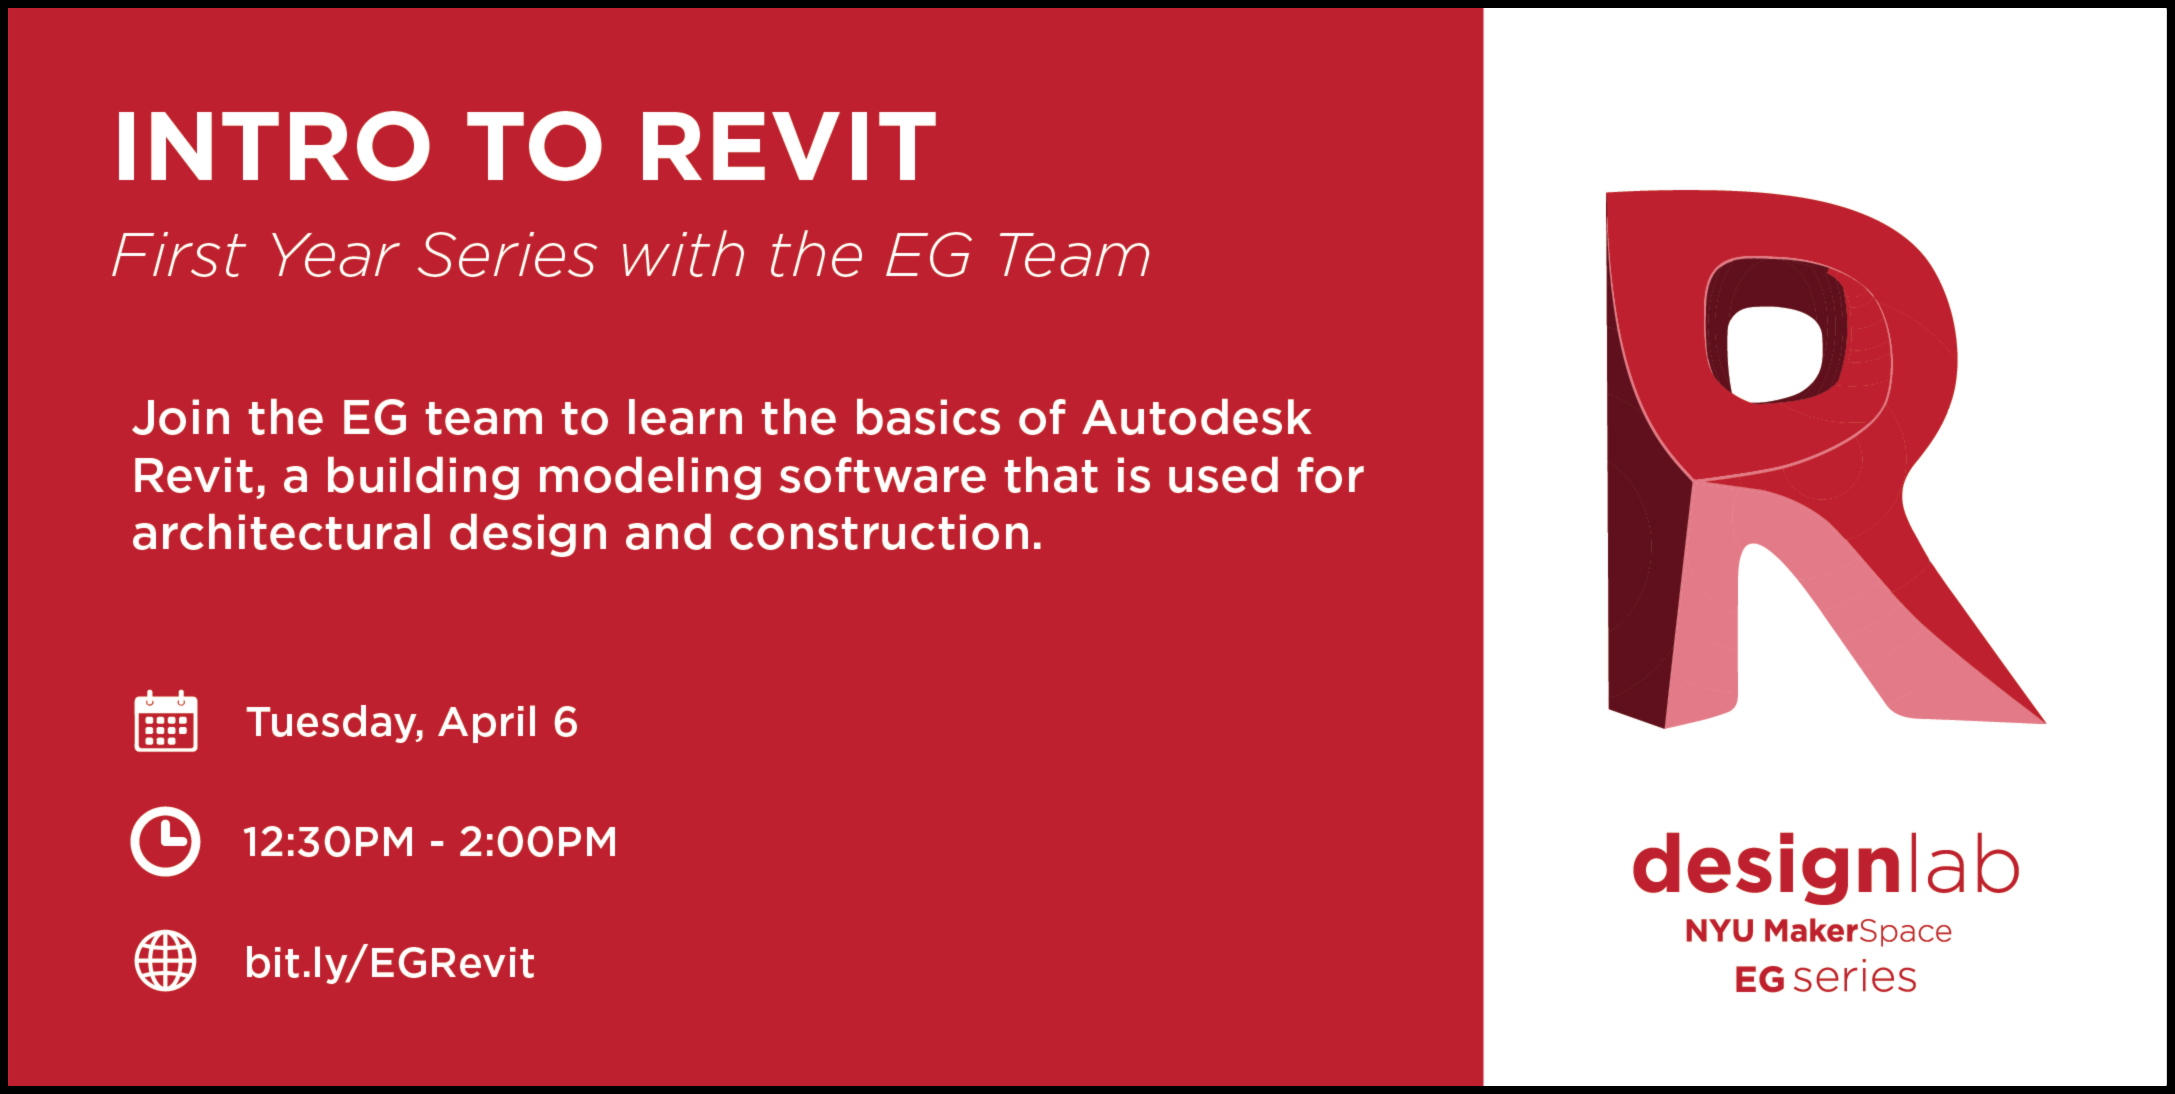 EG Intro to Revit Flyer